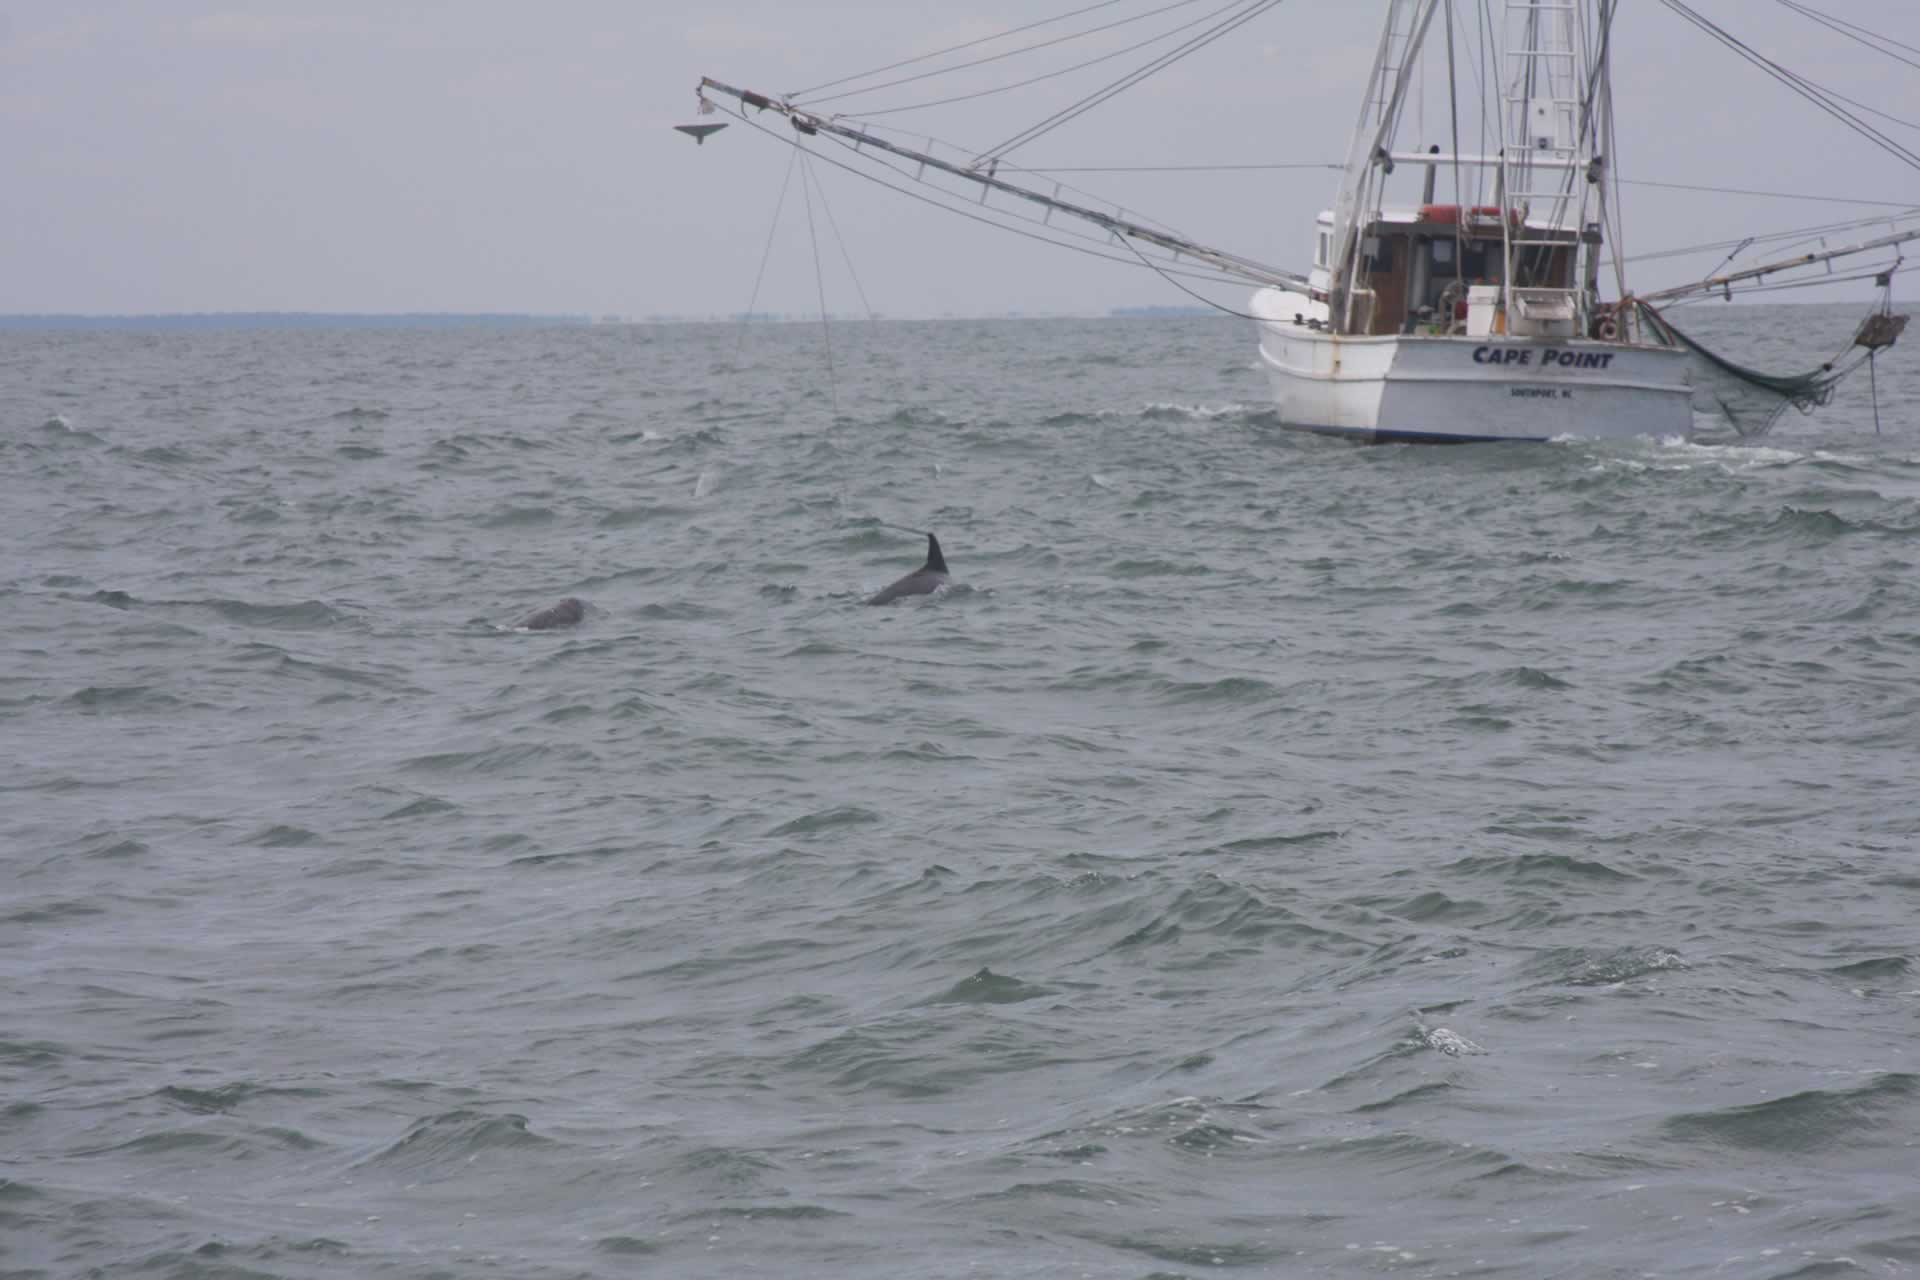 p_Holden_Beach_Fishing_Holden_Beach_Fishing_Dolphins_3.jpg